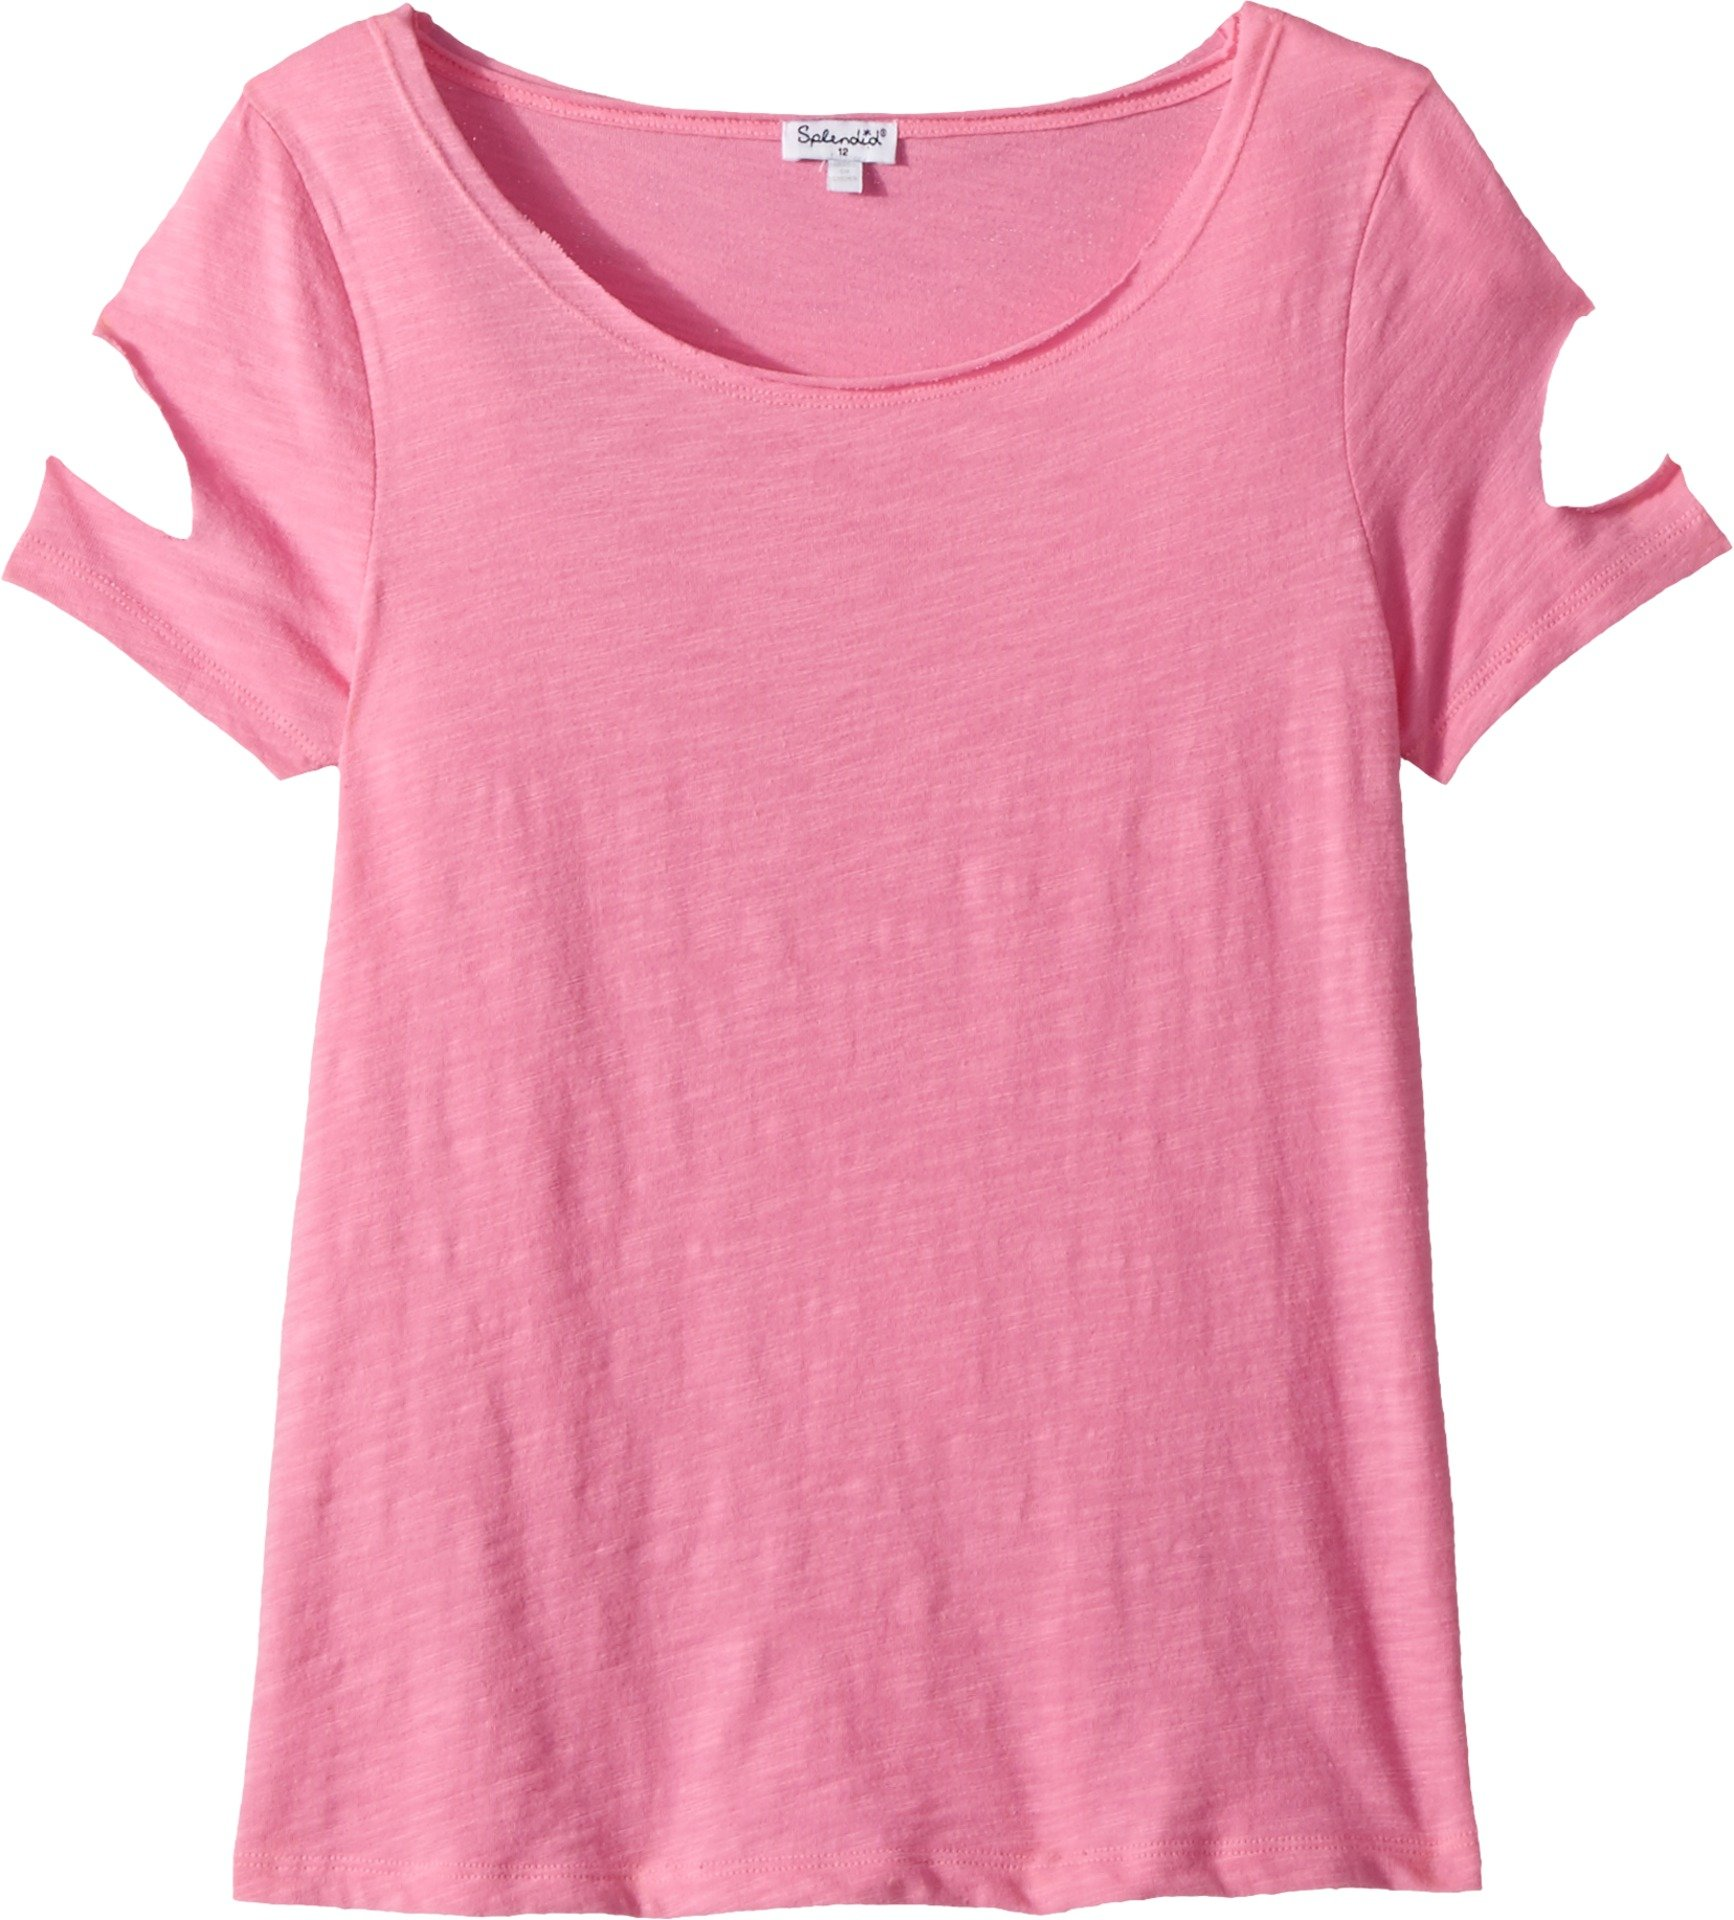 Splendid Big Girls' Cut Out Short Sleeve Top, Wild Orchid, 12